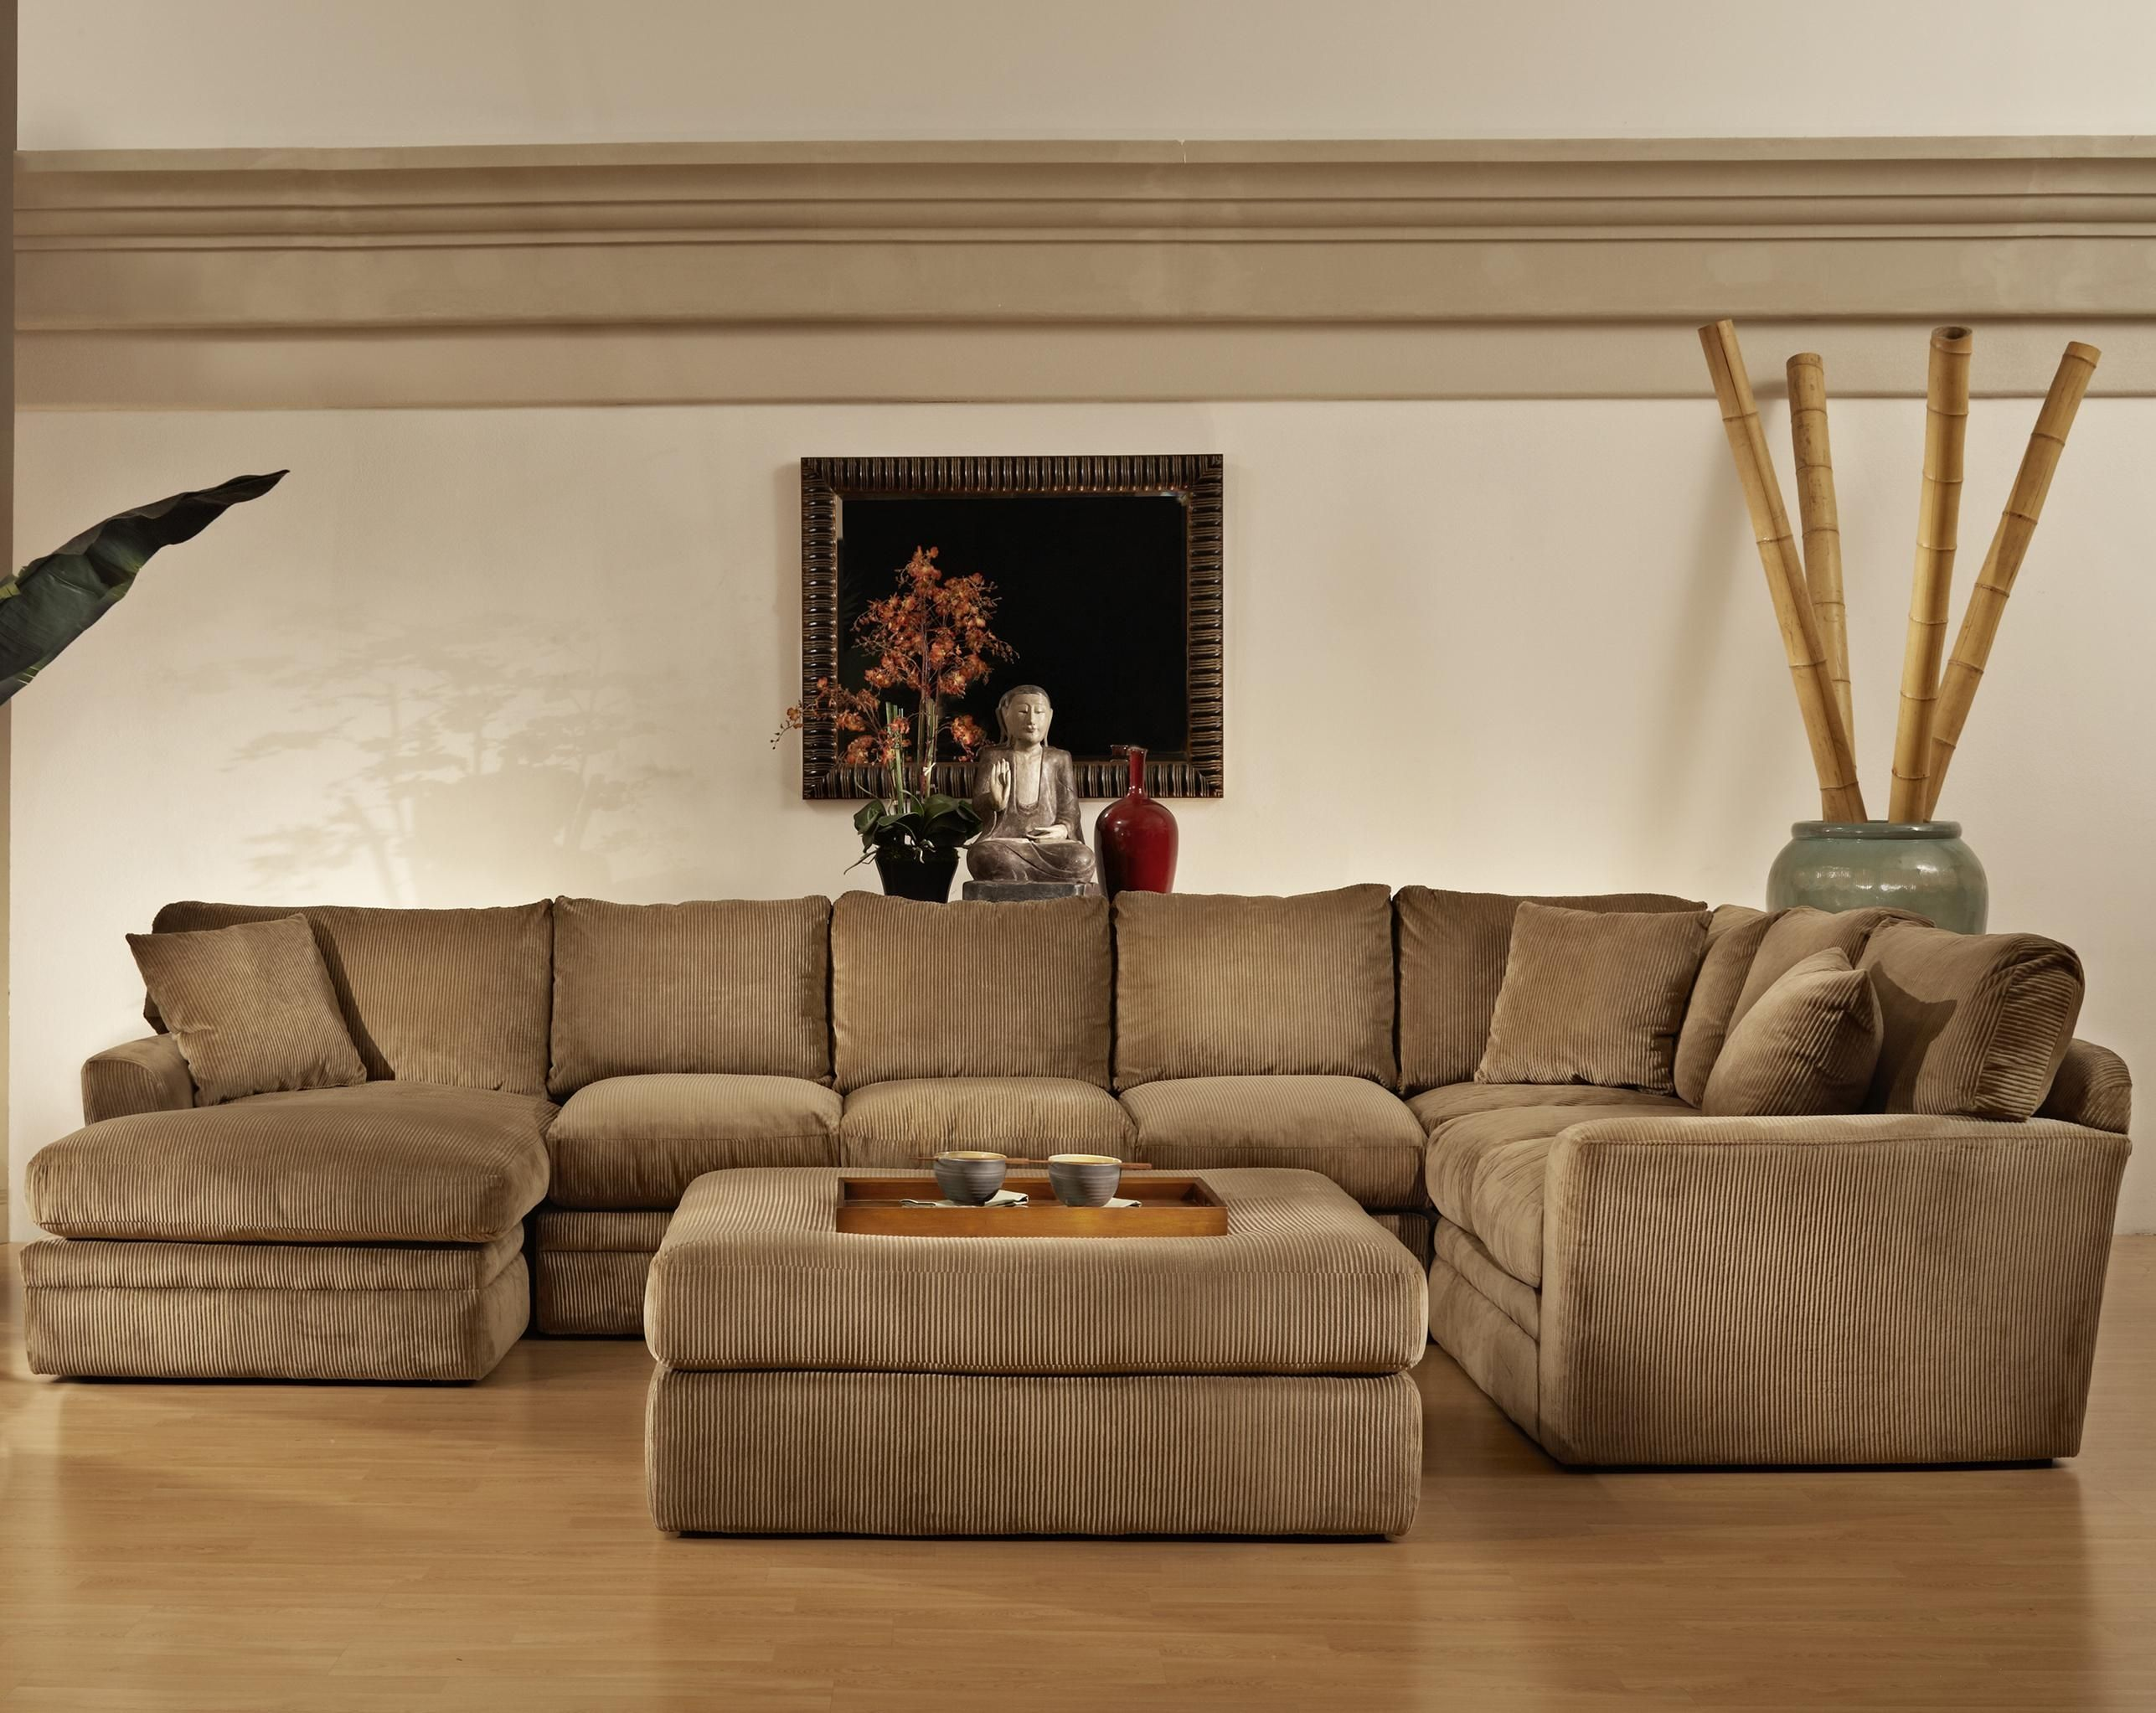 43 Awesome Comfy And Small Apartment Size Recliner Ideas Sectional Sofa With Chaise Sectional Sofa With Recliner Comfortable Sectional Sofa